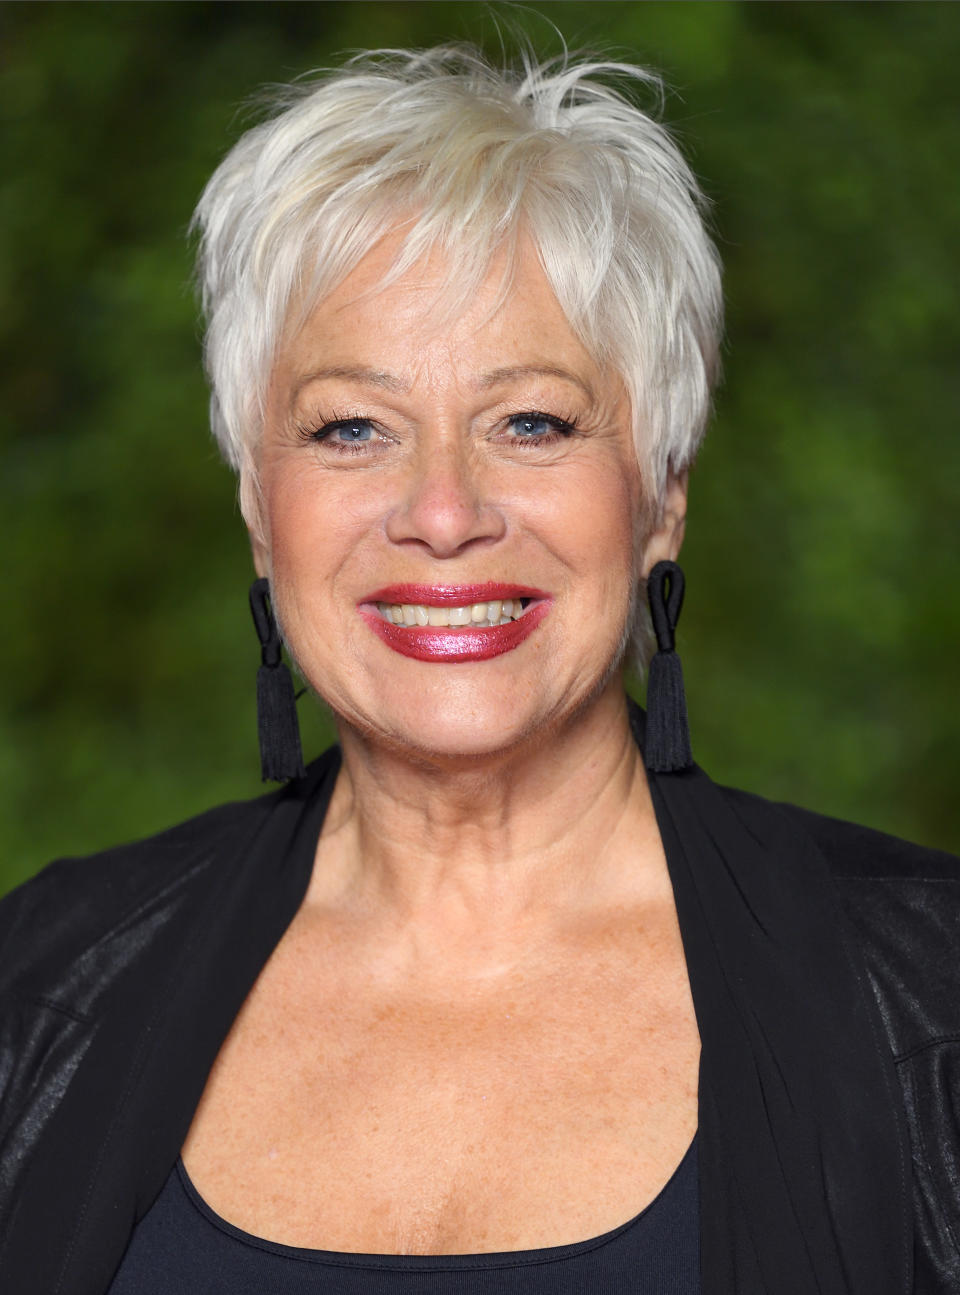 Denise Welch attends